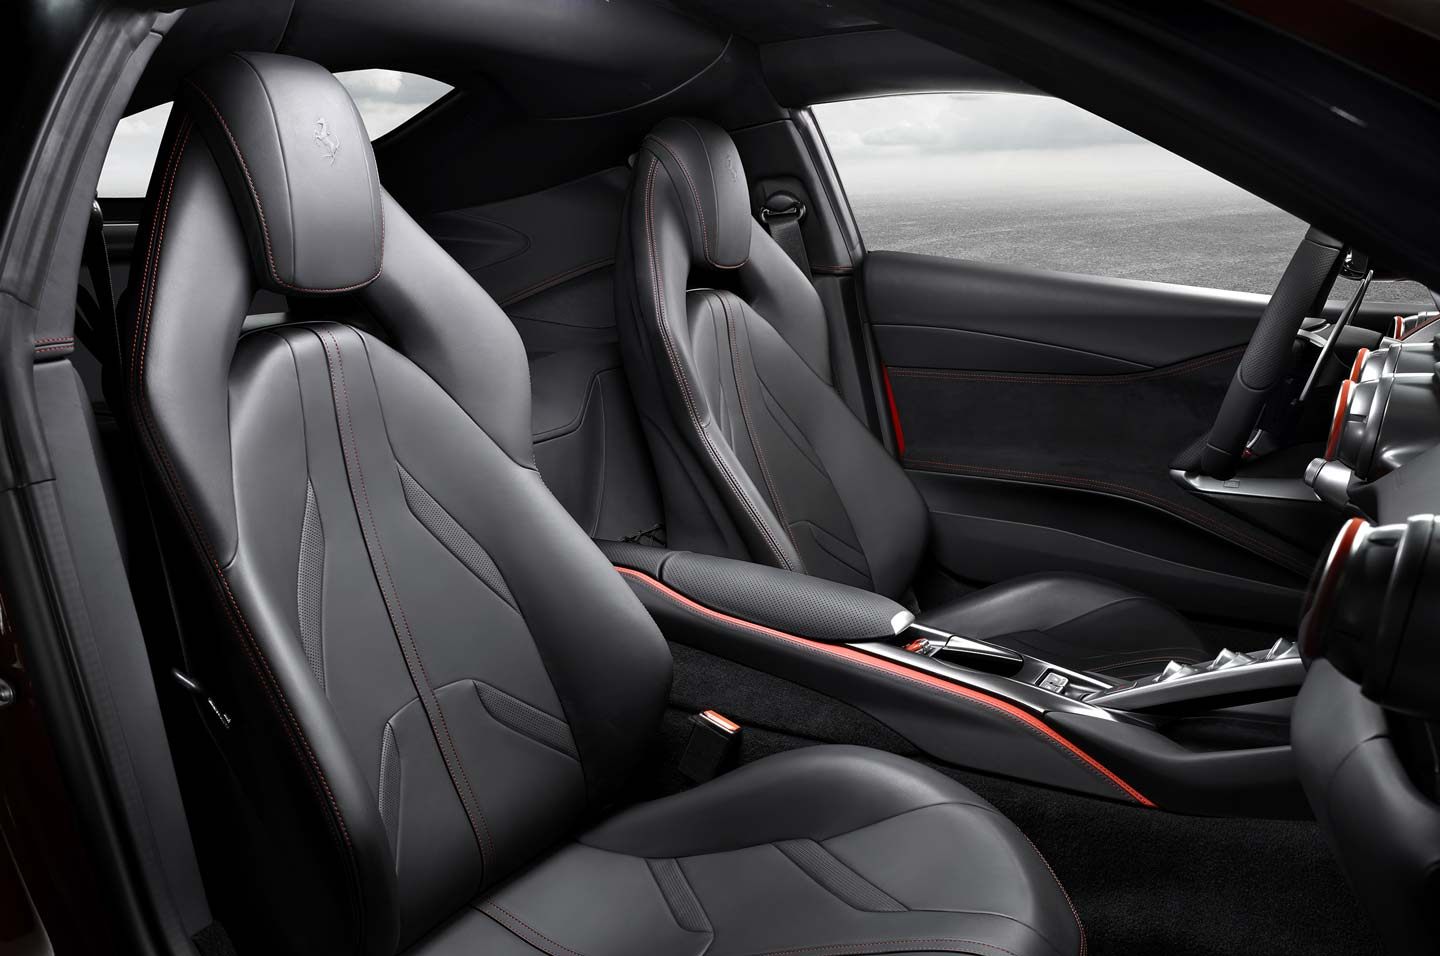 interior of new model of city car in 2014 autos post. Black Bedroom Furniture Sets. Home Design Ideas